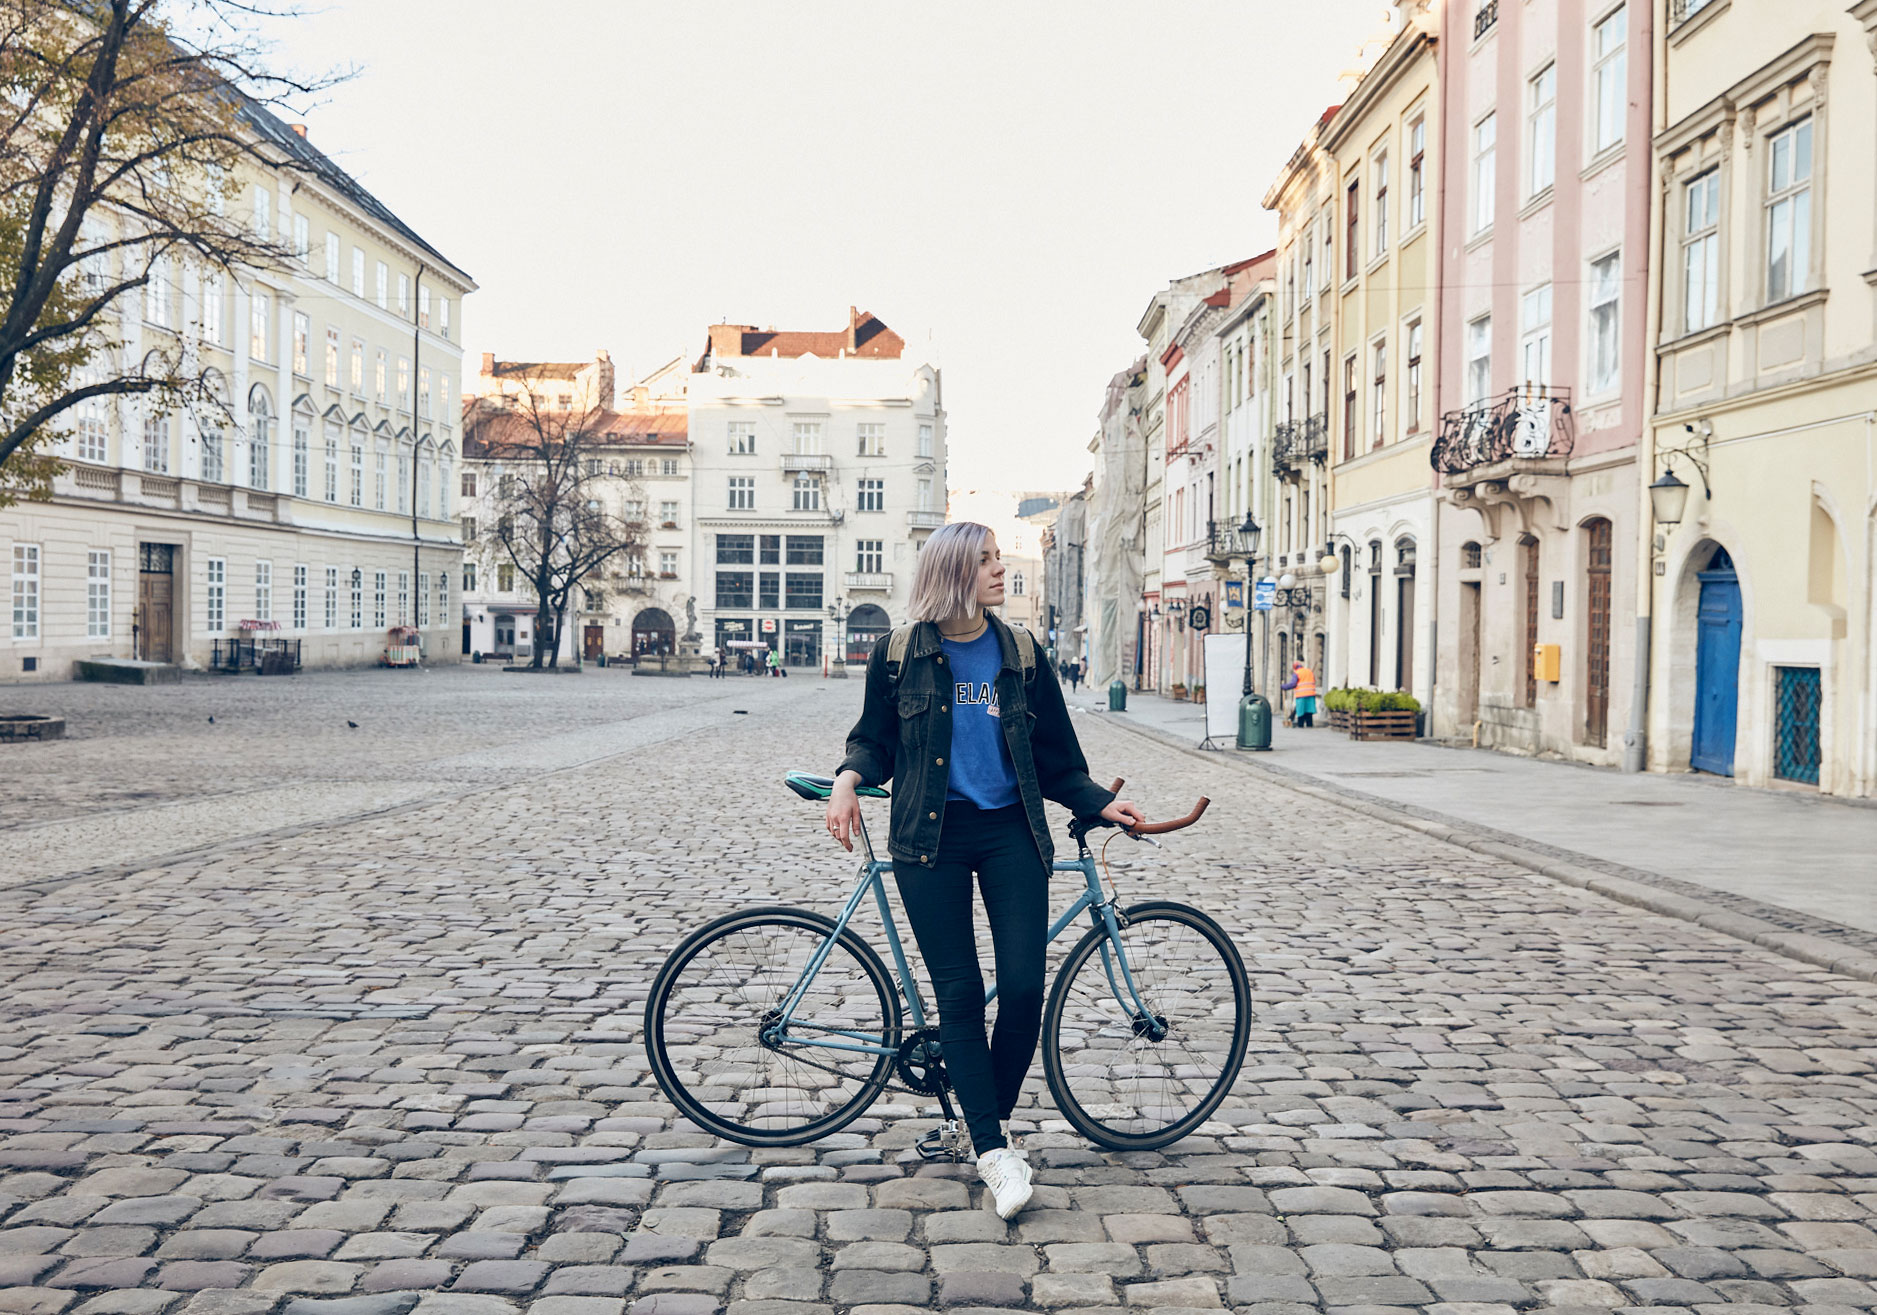 woman model posing in front of a bicycle in a town square